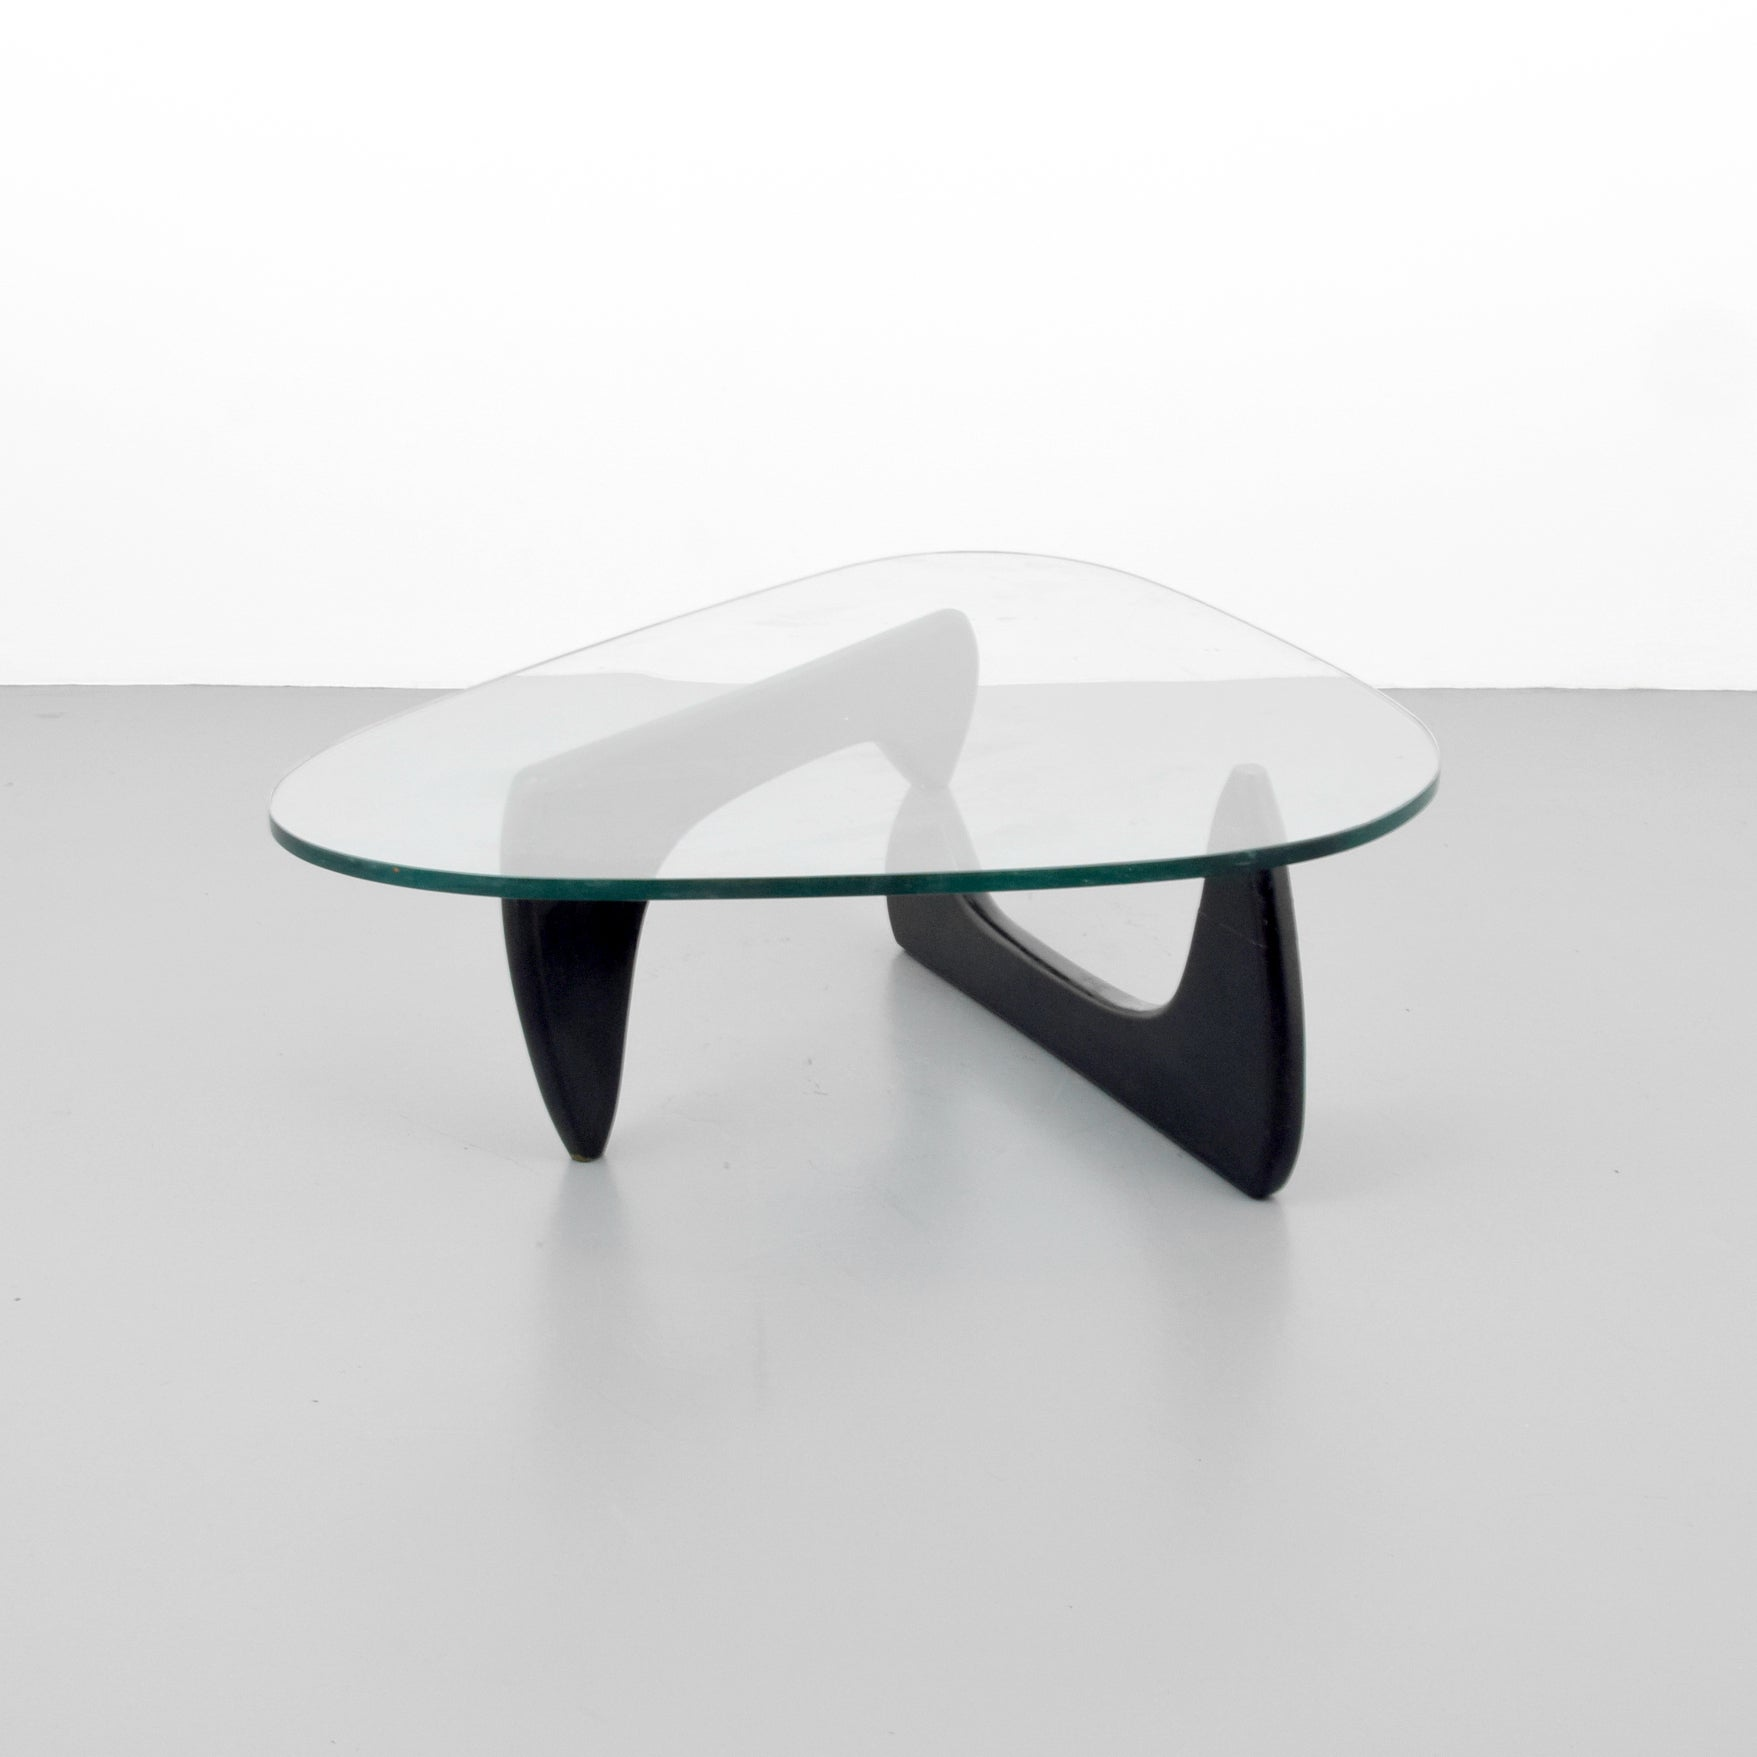 Early Edition Isamu Noguchi Table In 1950 By Herman Miller 1949 At 1stdibs